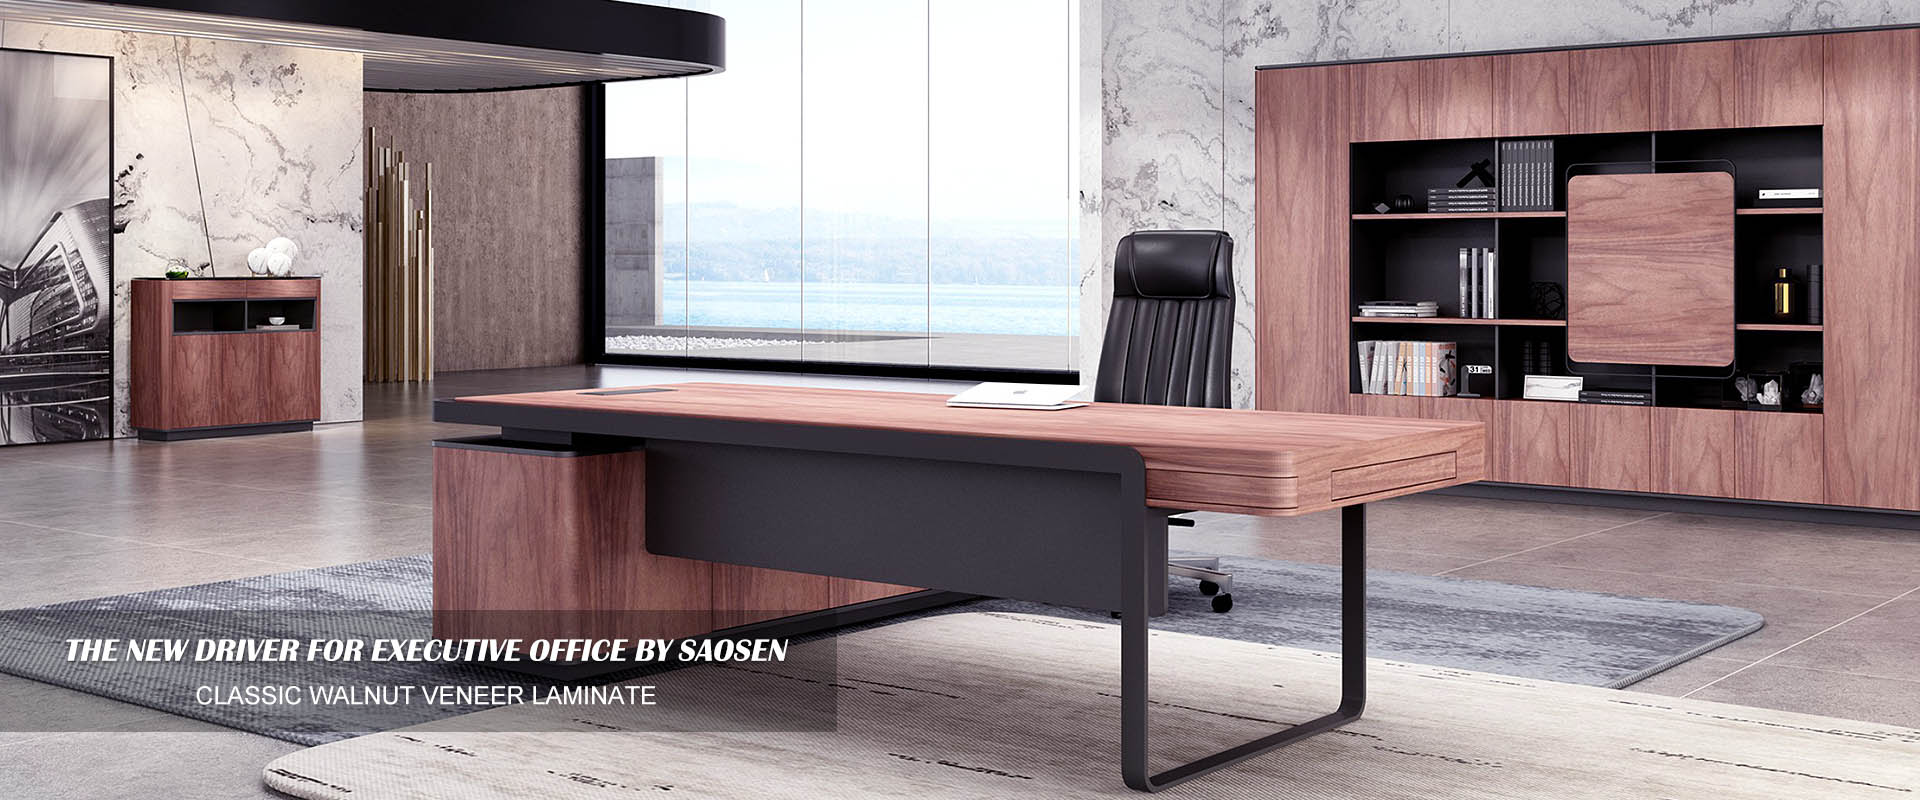 KLASIK WALNUT PLACAGE DU